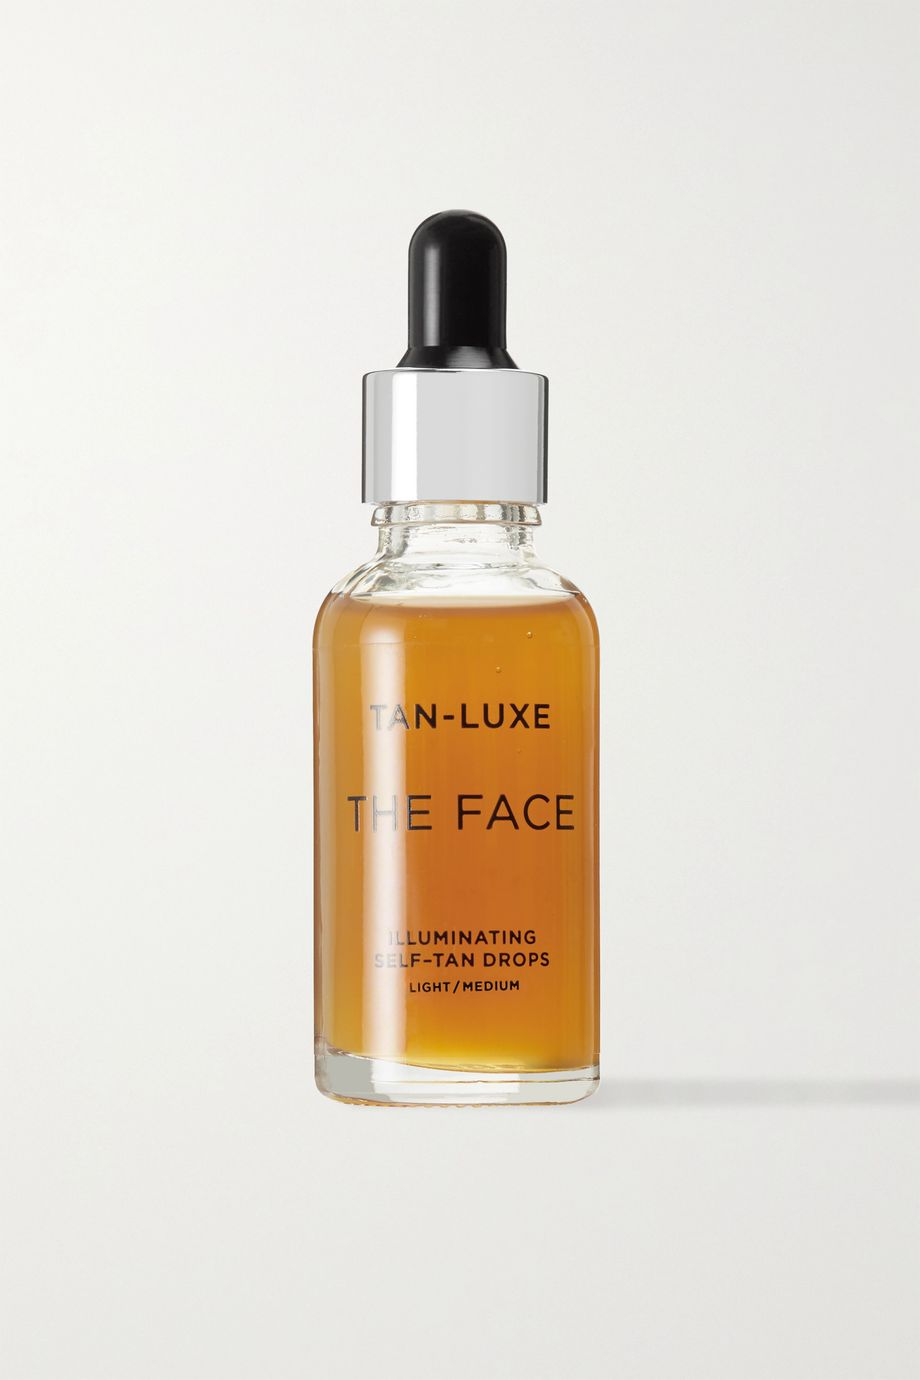 TAN-LUXE The Face Illuminating Self-Tan Drops - Light/Medium, 30ml